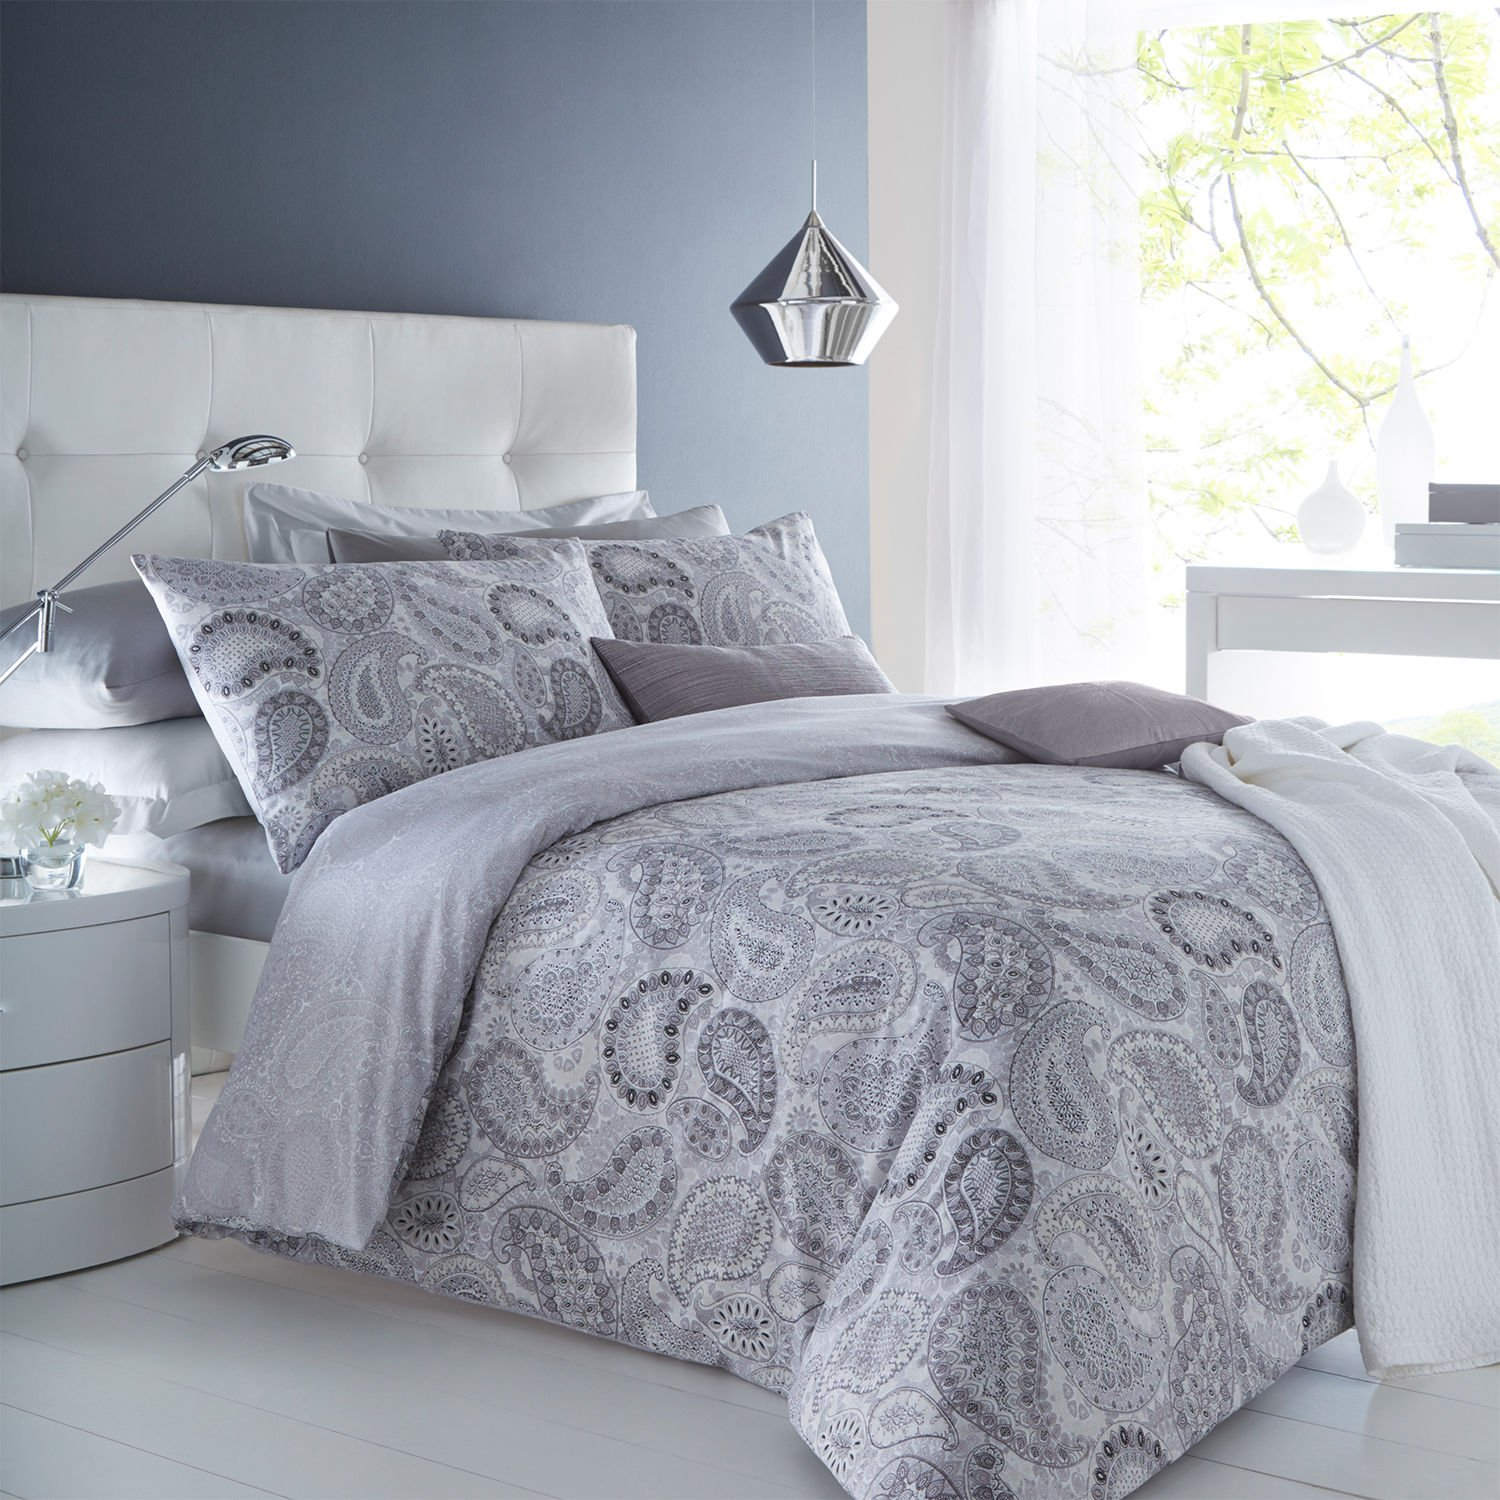 winter drop for ideal cover design linen hq bedeck full at duvet floral snow bedding formidable the of photos size grey cotton